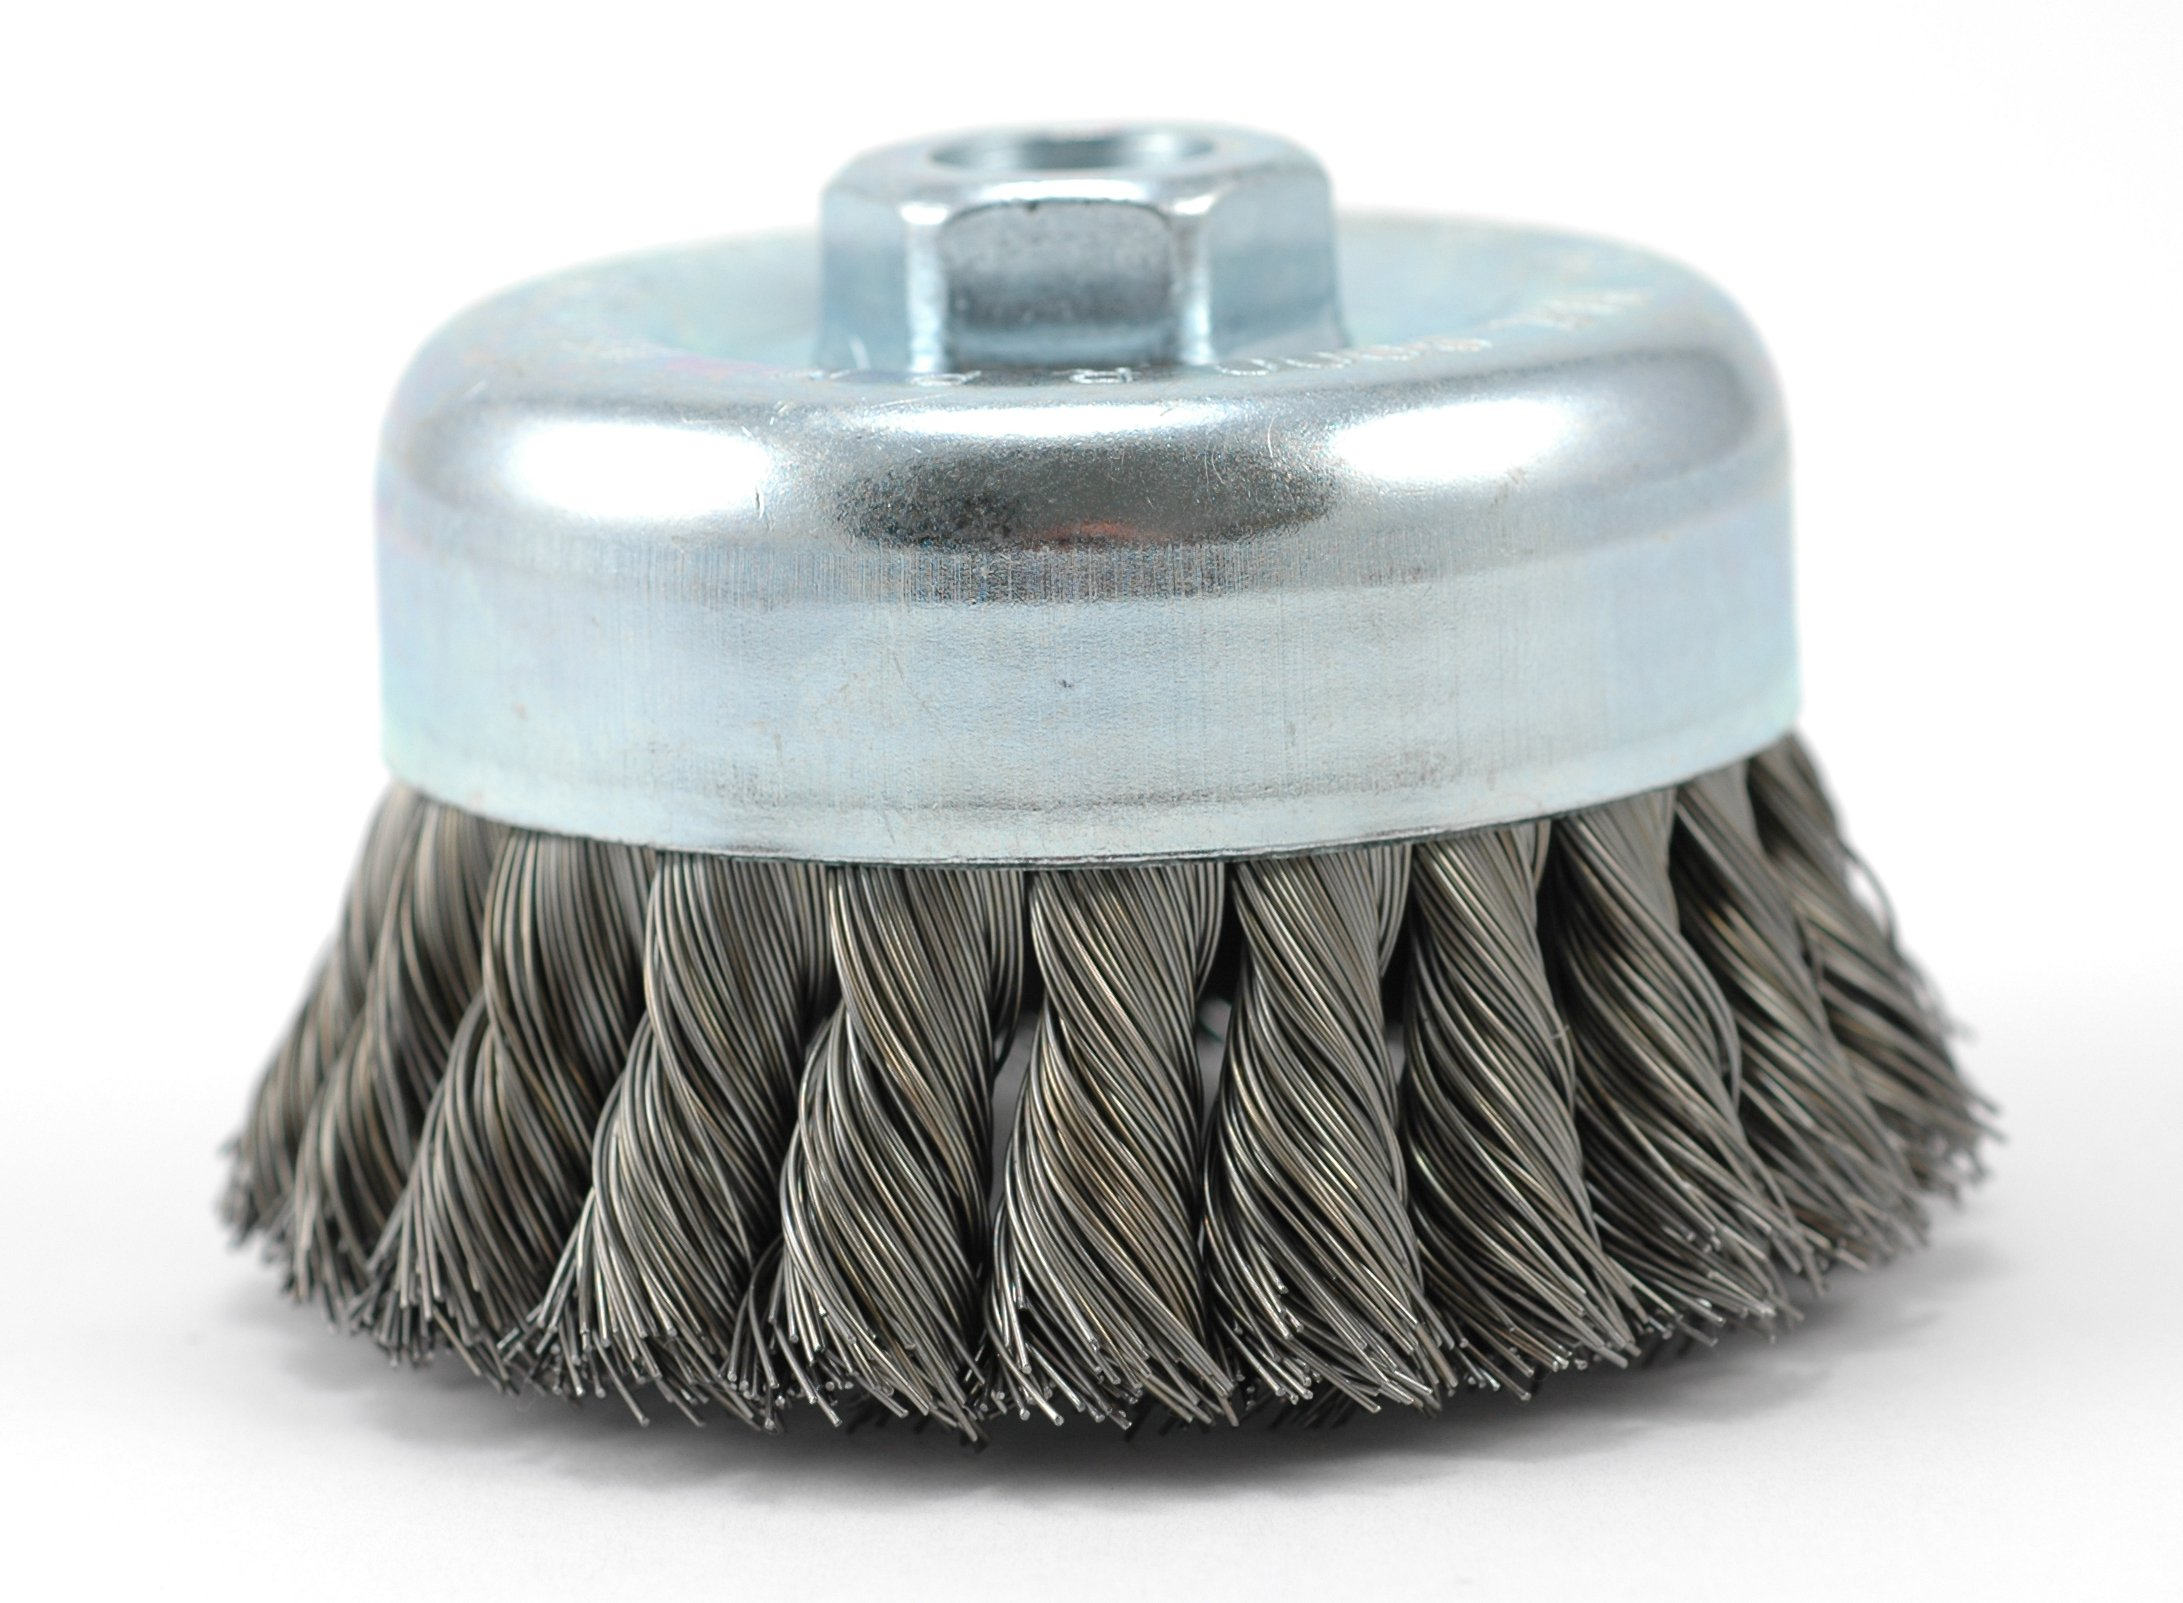 Cheap 3 Inch Wire Cup Brush, find 3 Inch Wire Cup Brush deals on ...